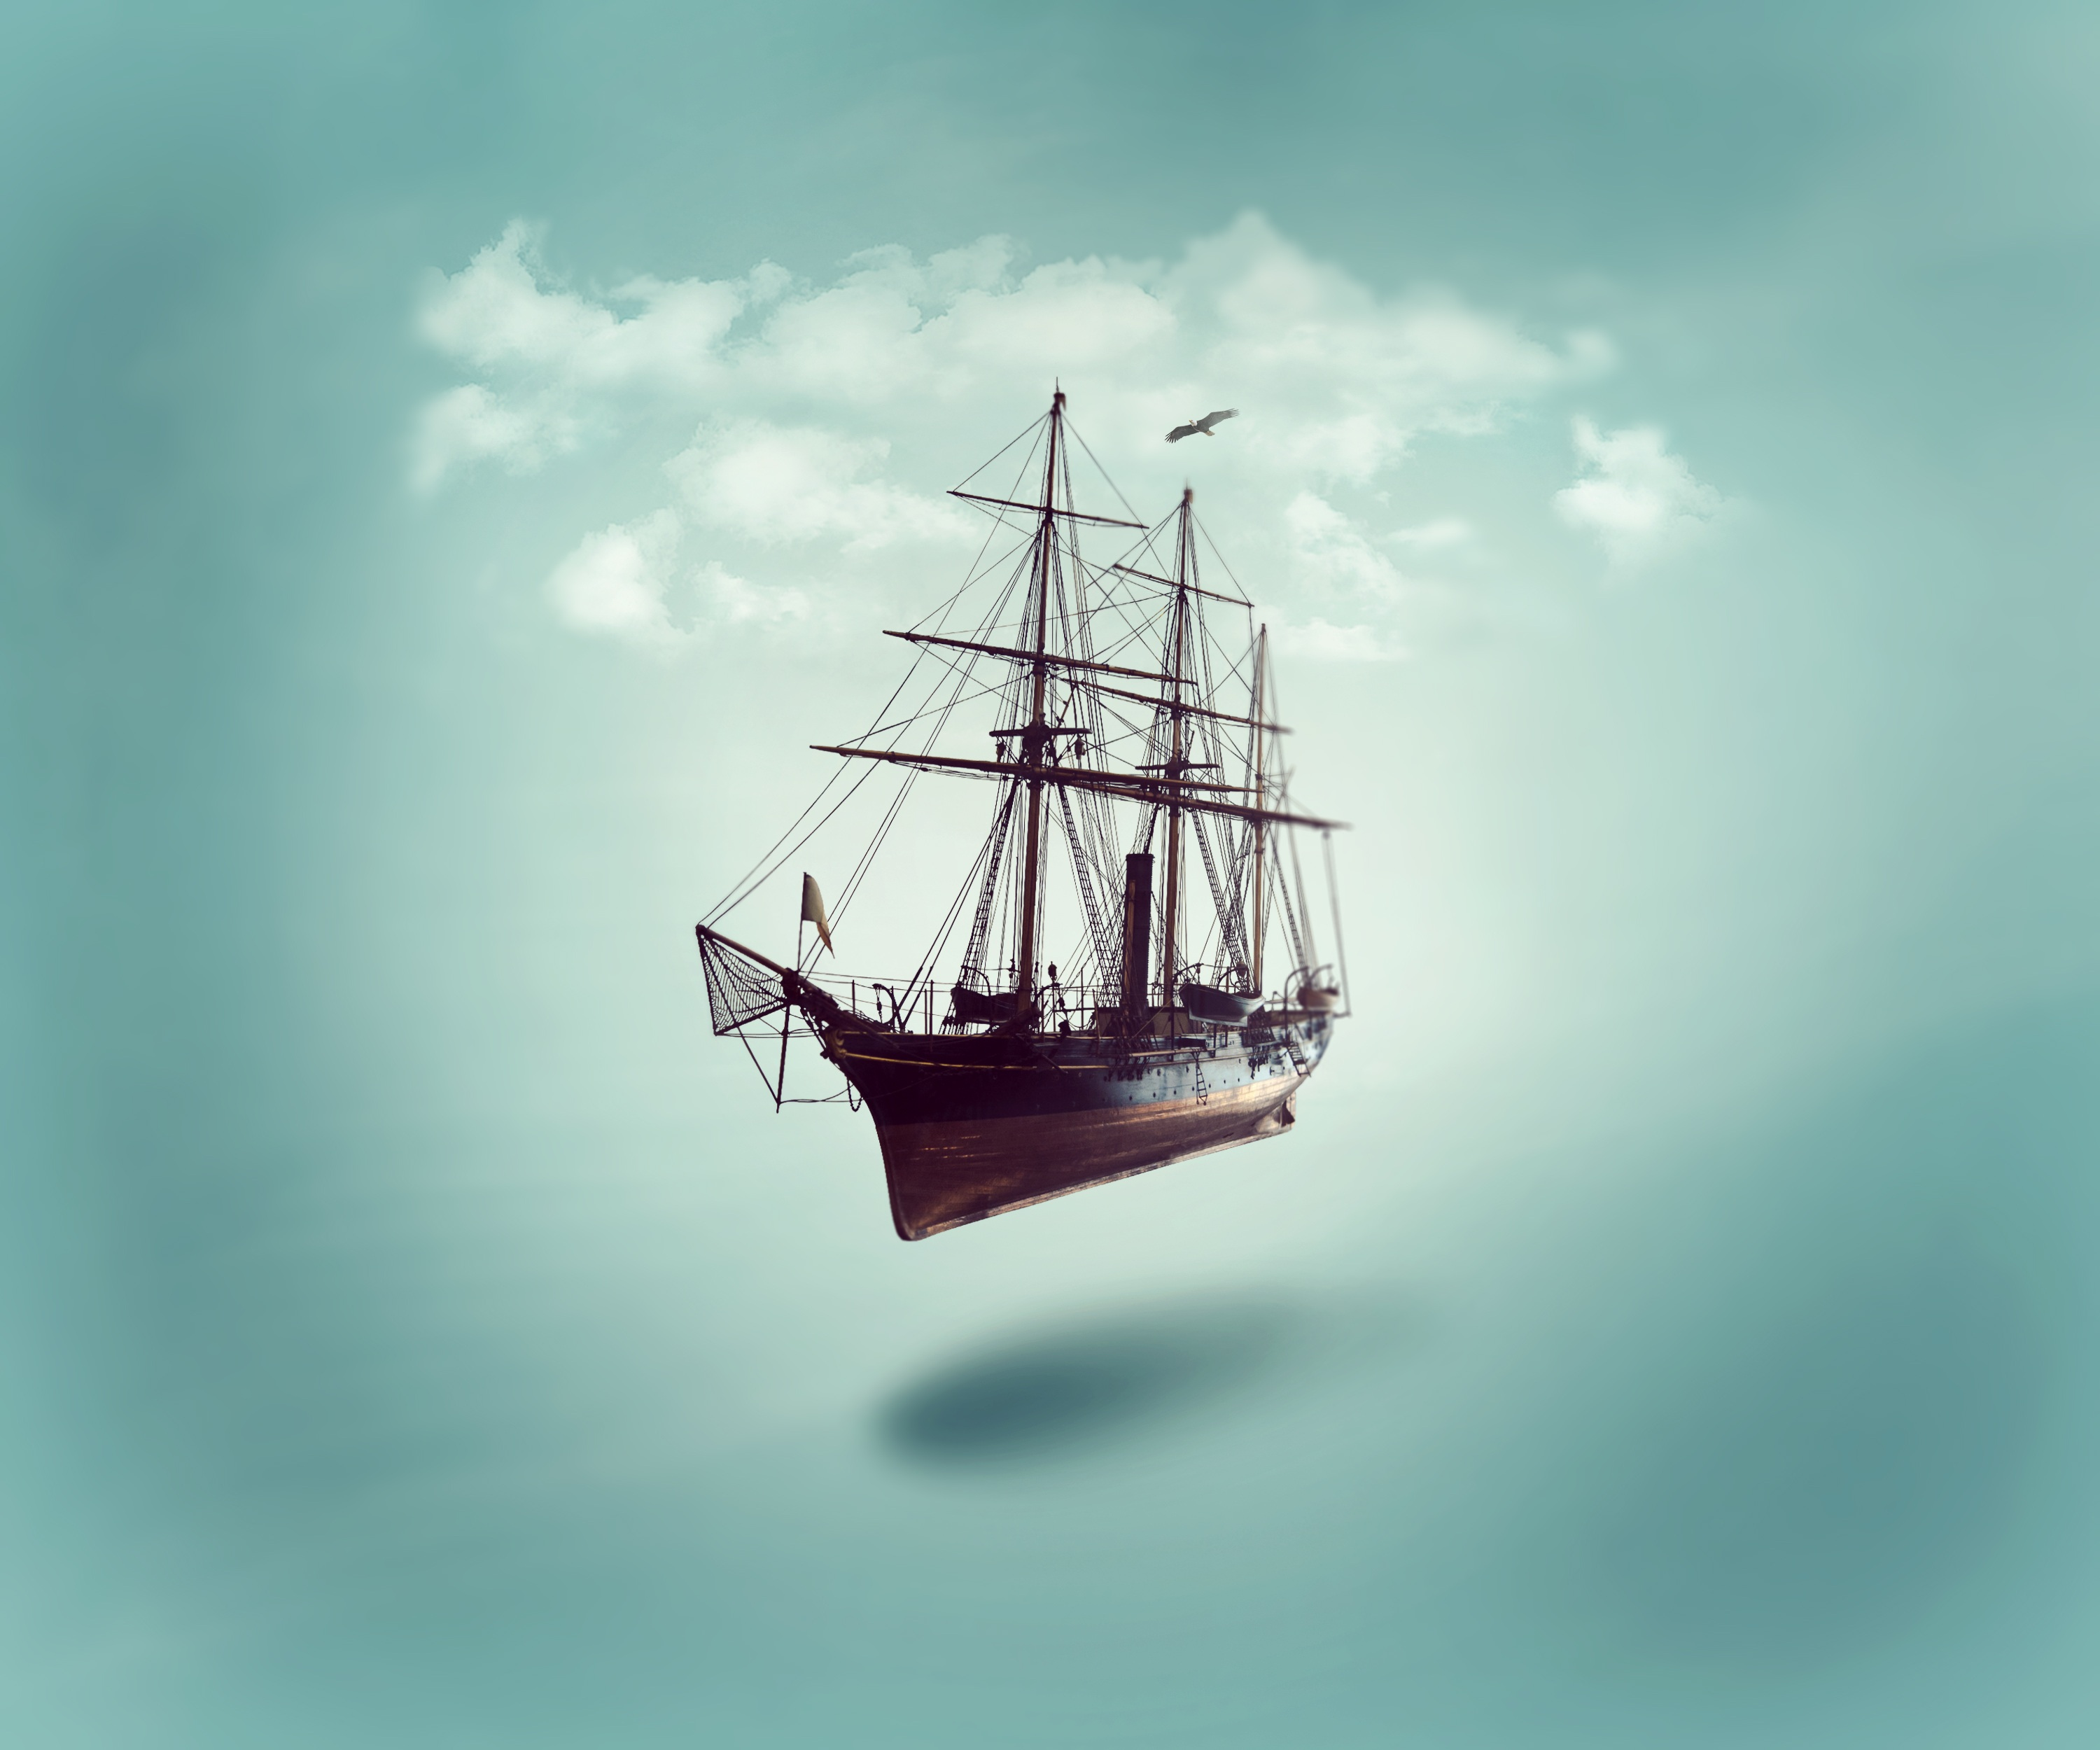 106213 download wallpaper Minimalism, Ship, Sky, Clouds screensavers and pictures for free